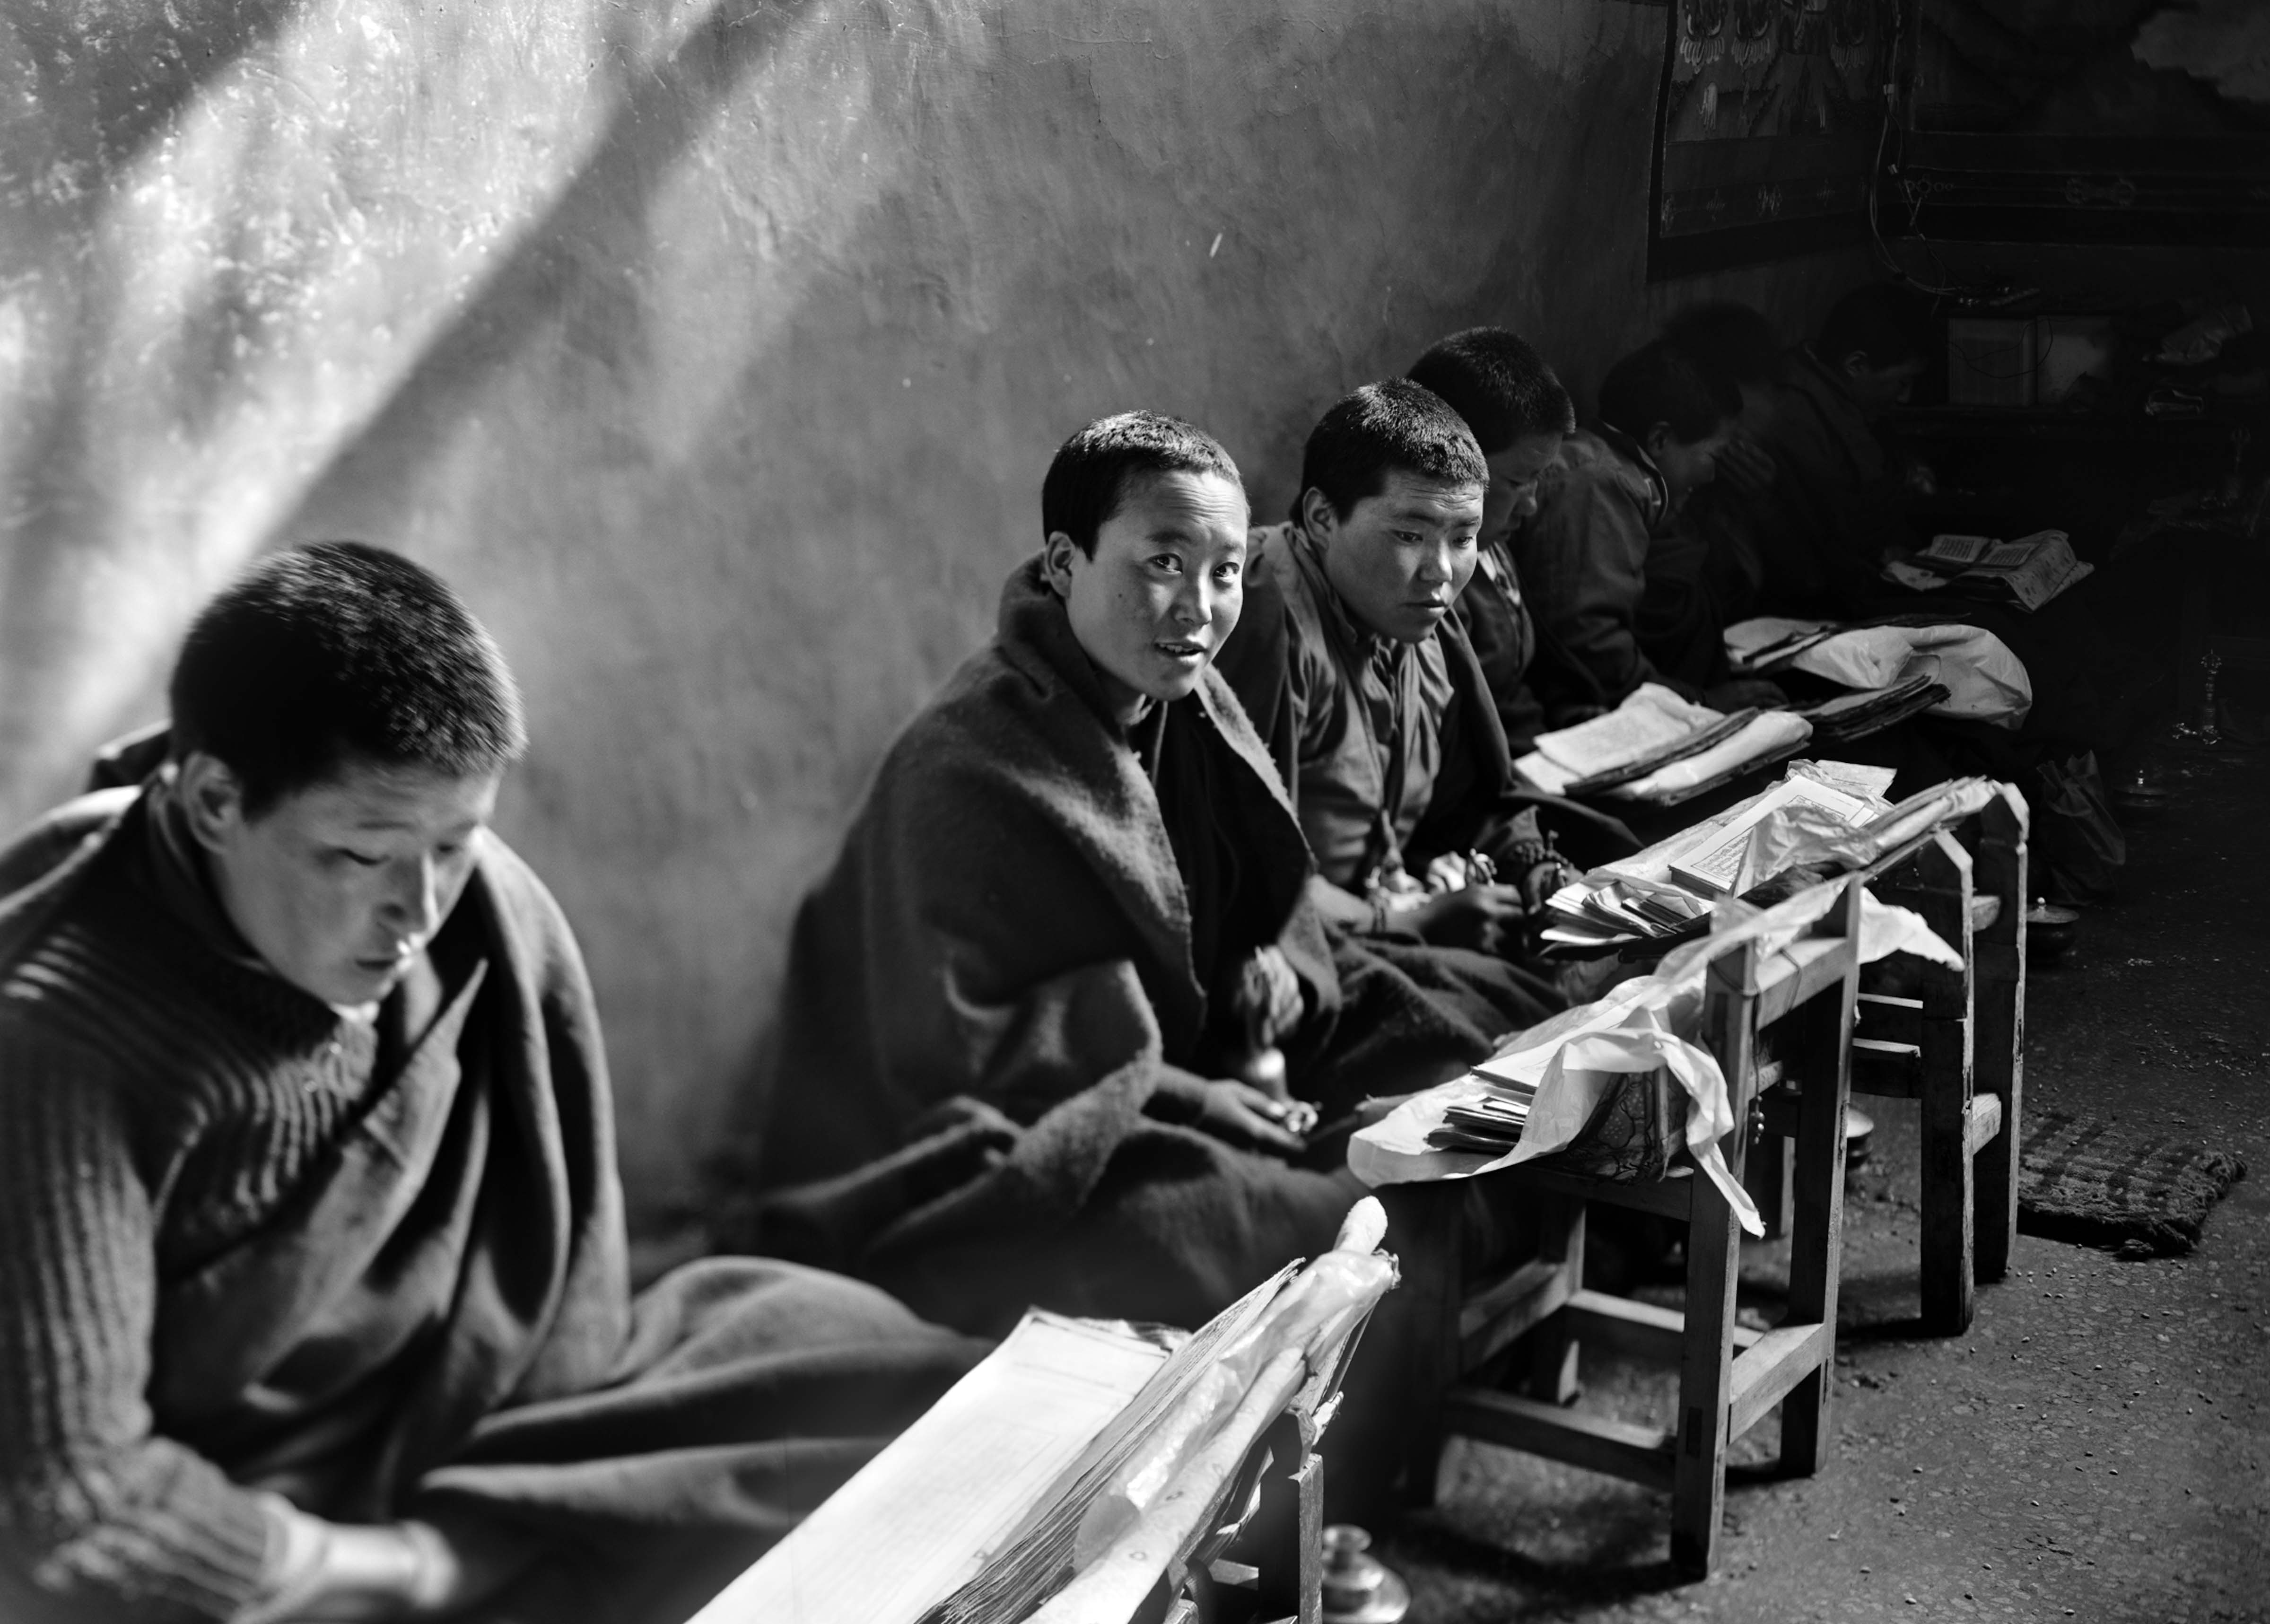 Monks in Study